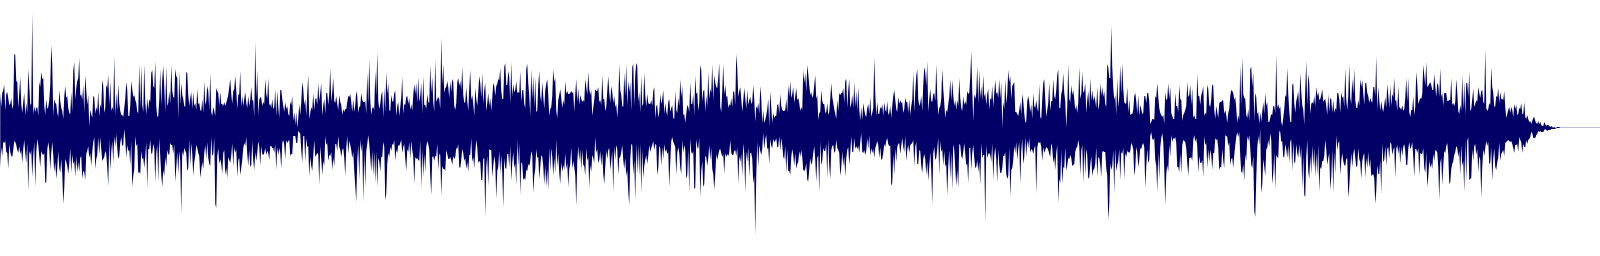 waveform of track #90028